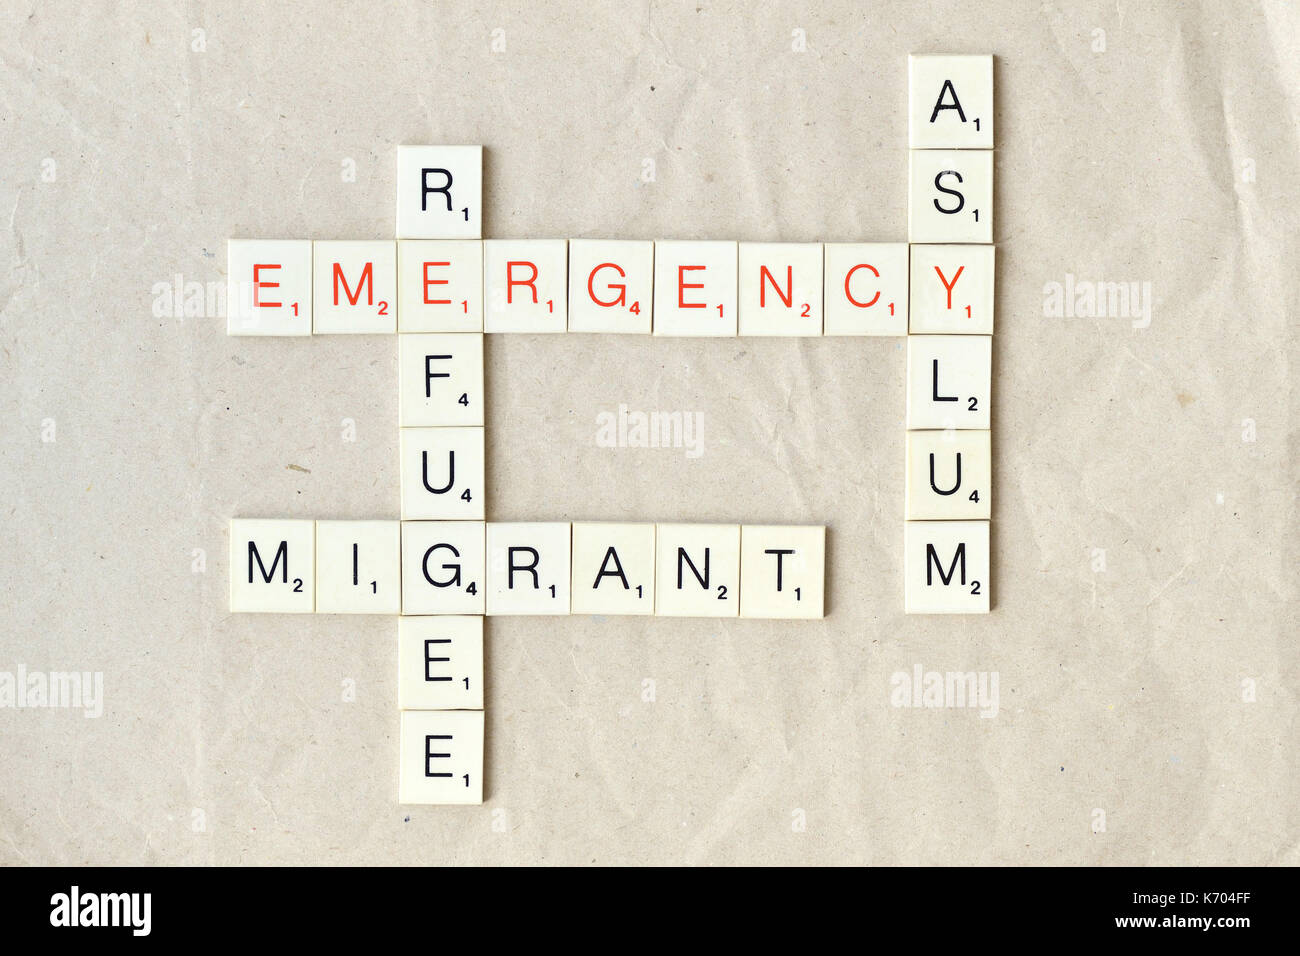 Immigration, refugee and asylum concept - Social issues - Stock Image